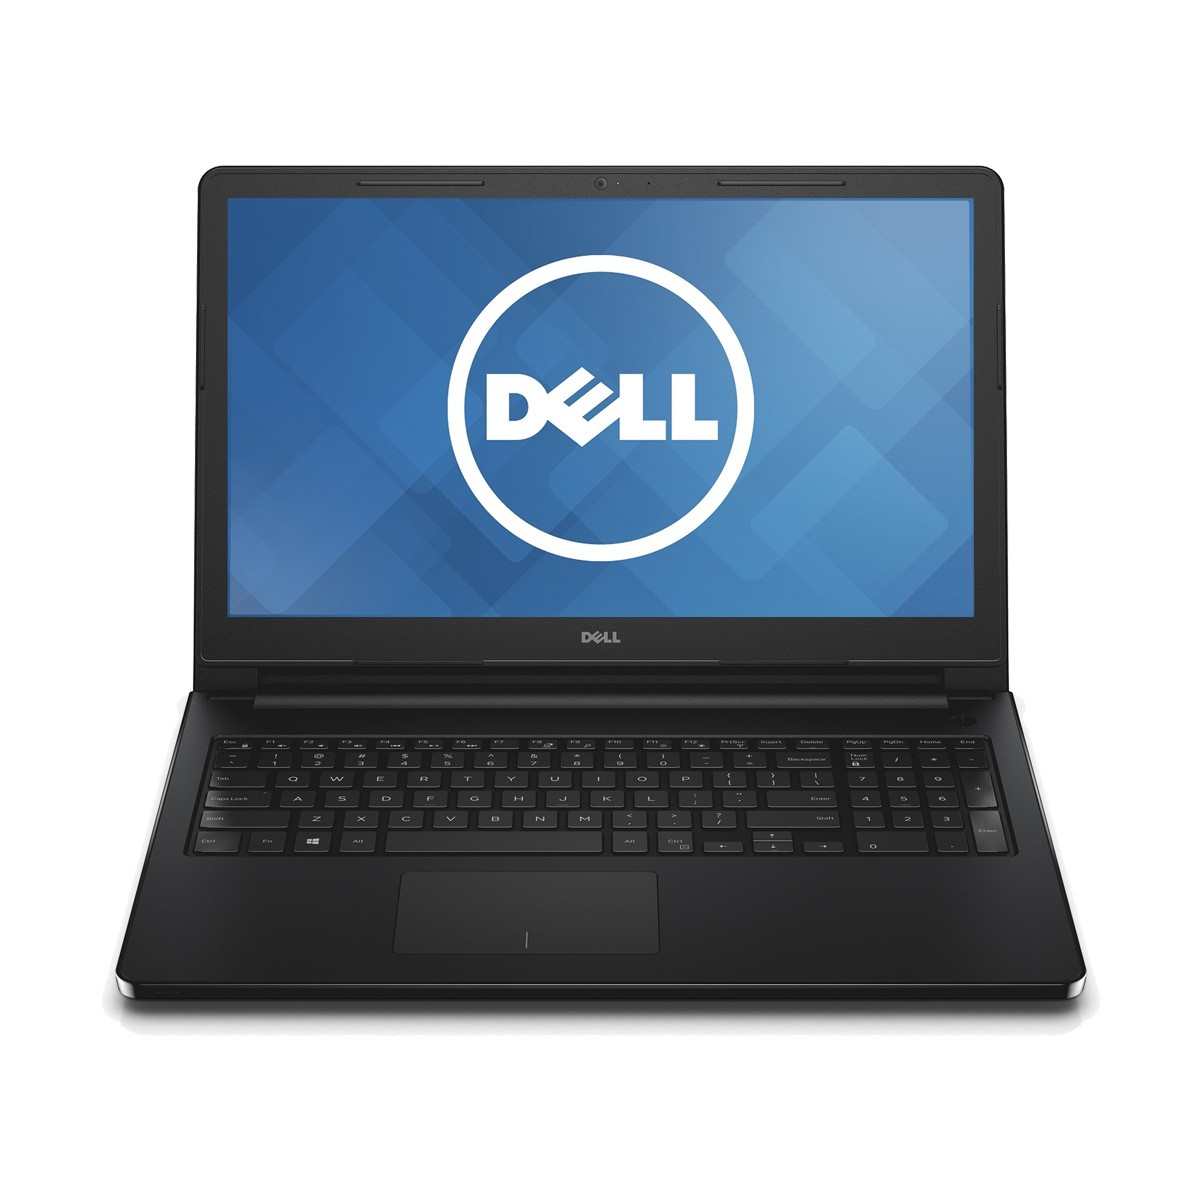 November 2017 V Dell Inspiron 20 3064 Touch 15 3552 Intel Cdc N3060 Notebook